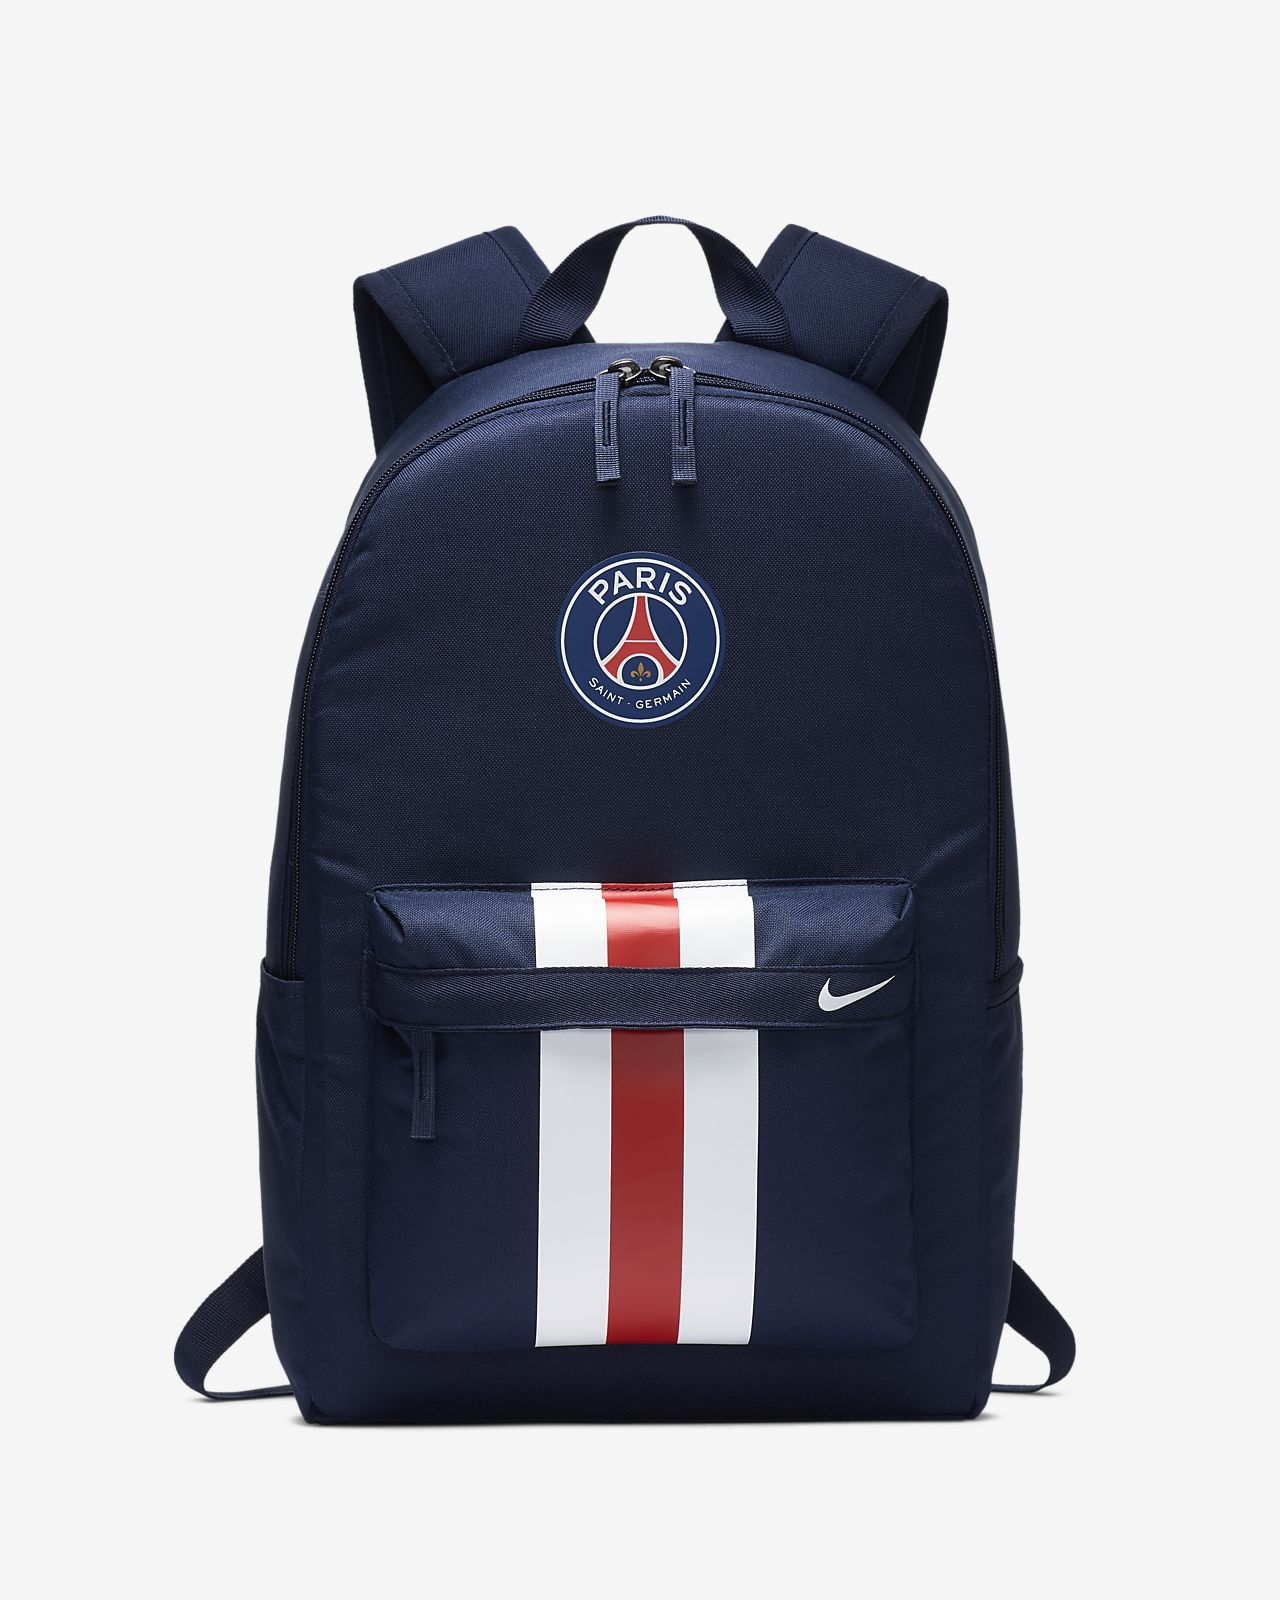 Paris Saint-Germain Stadium Football Backpack